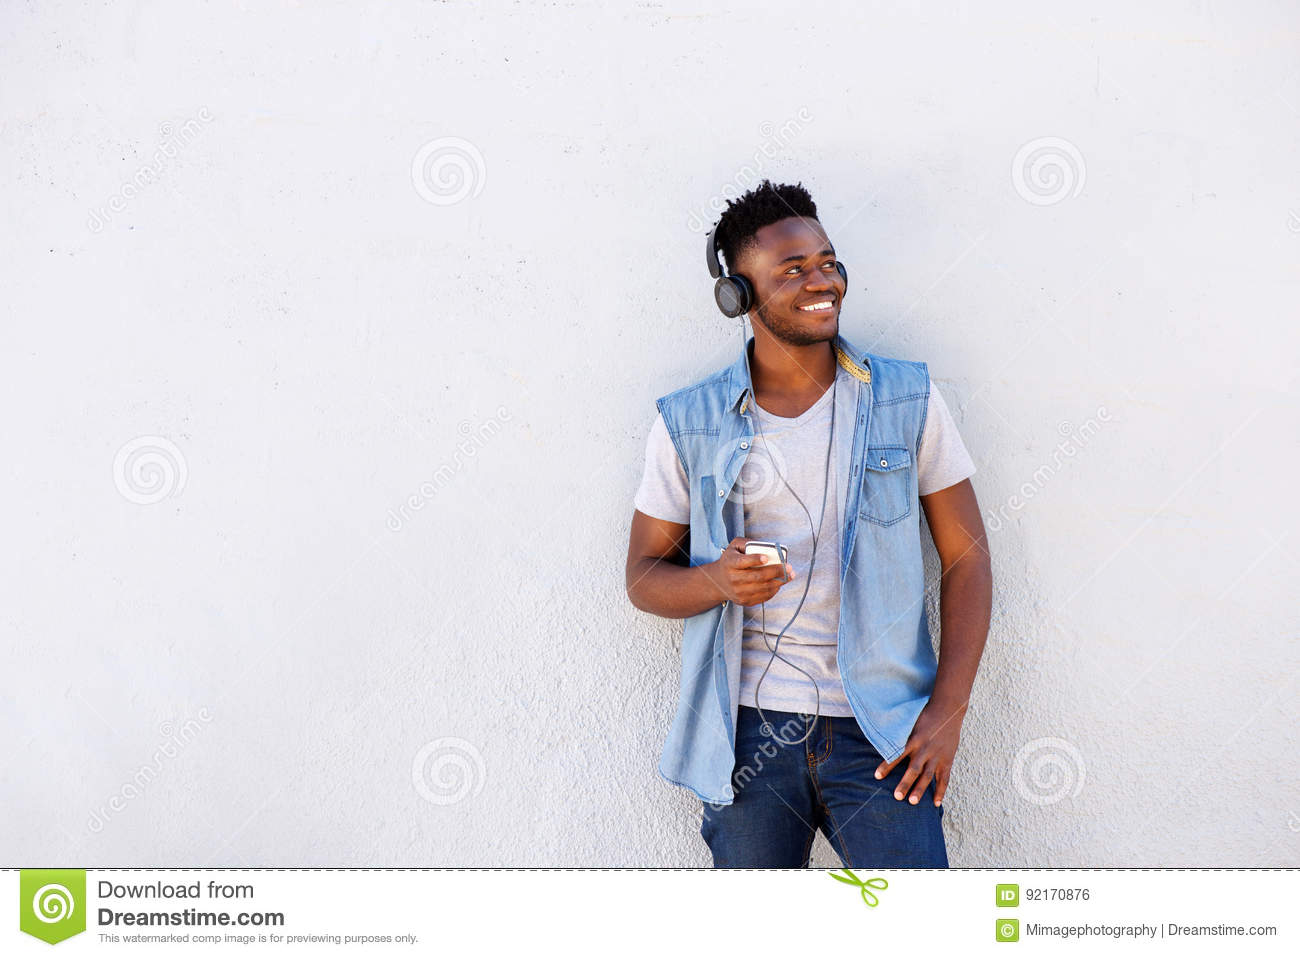 Cool african guy with mobile phone and headphones listening to music